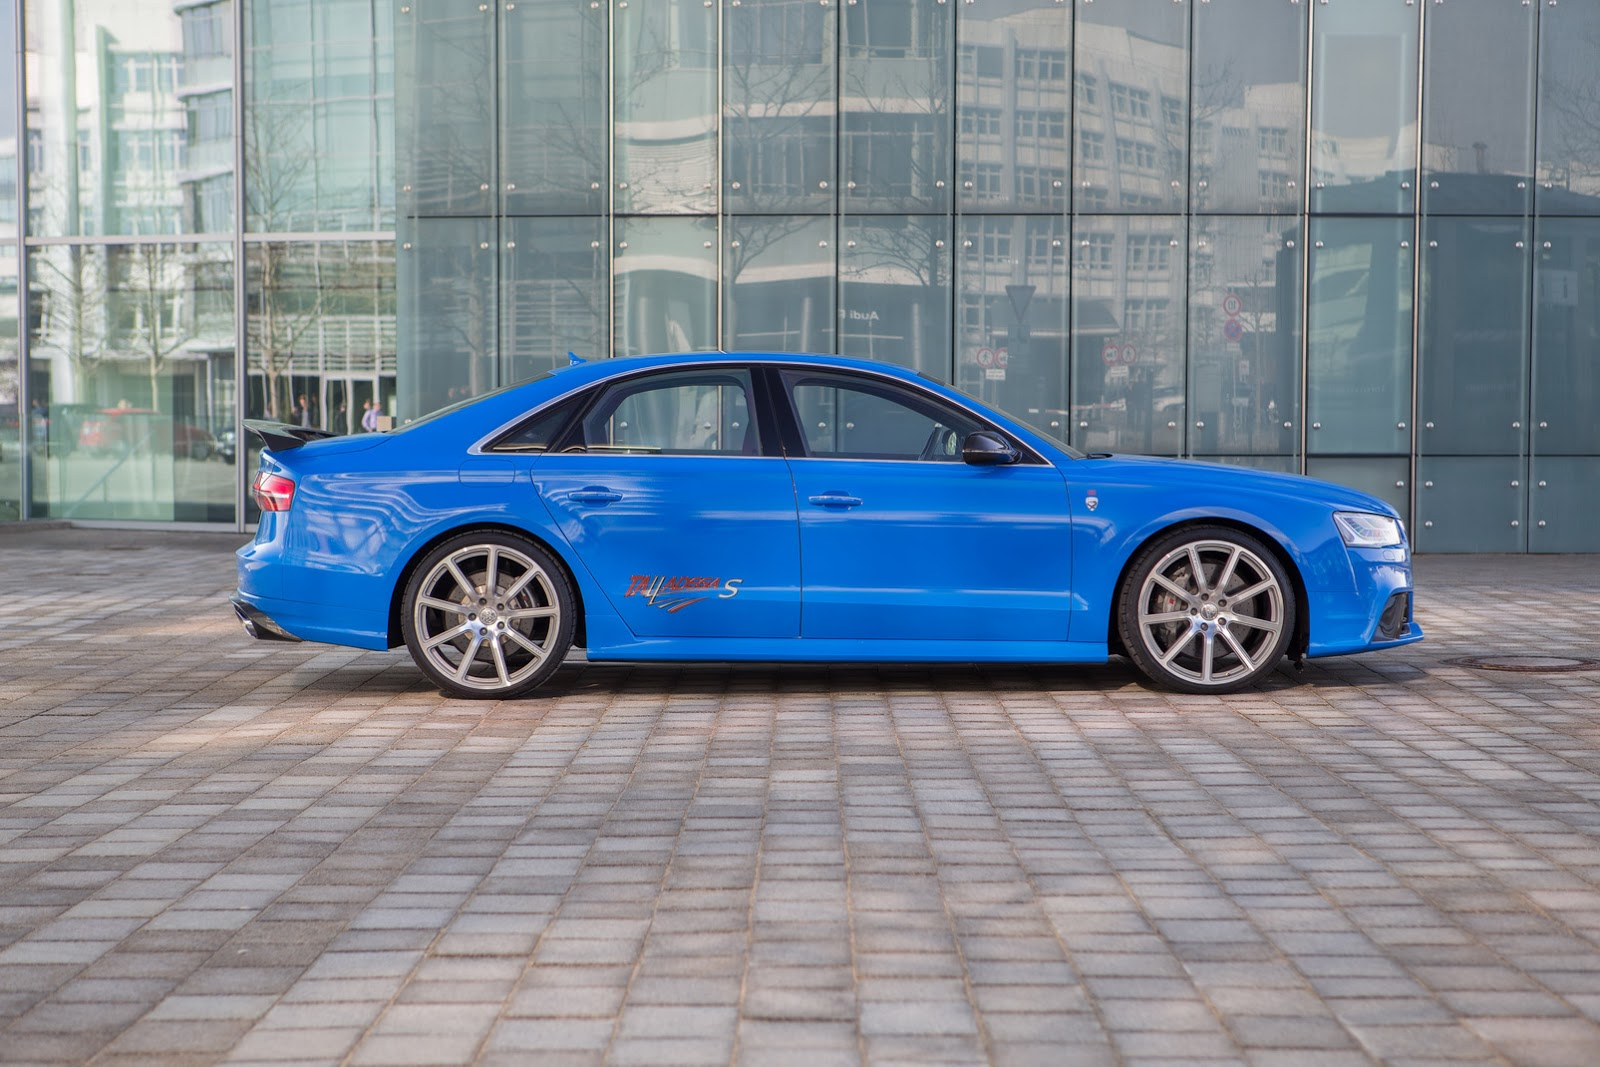 Mtm Reveals New Audi S8 Talladega S Model With 802 Hp On